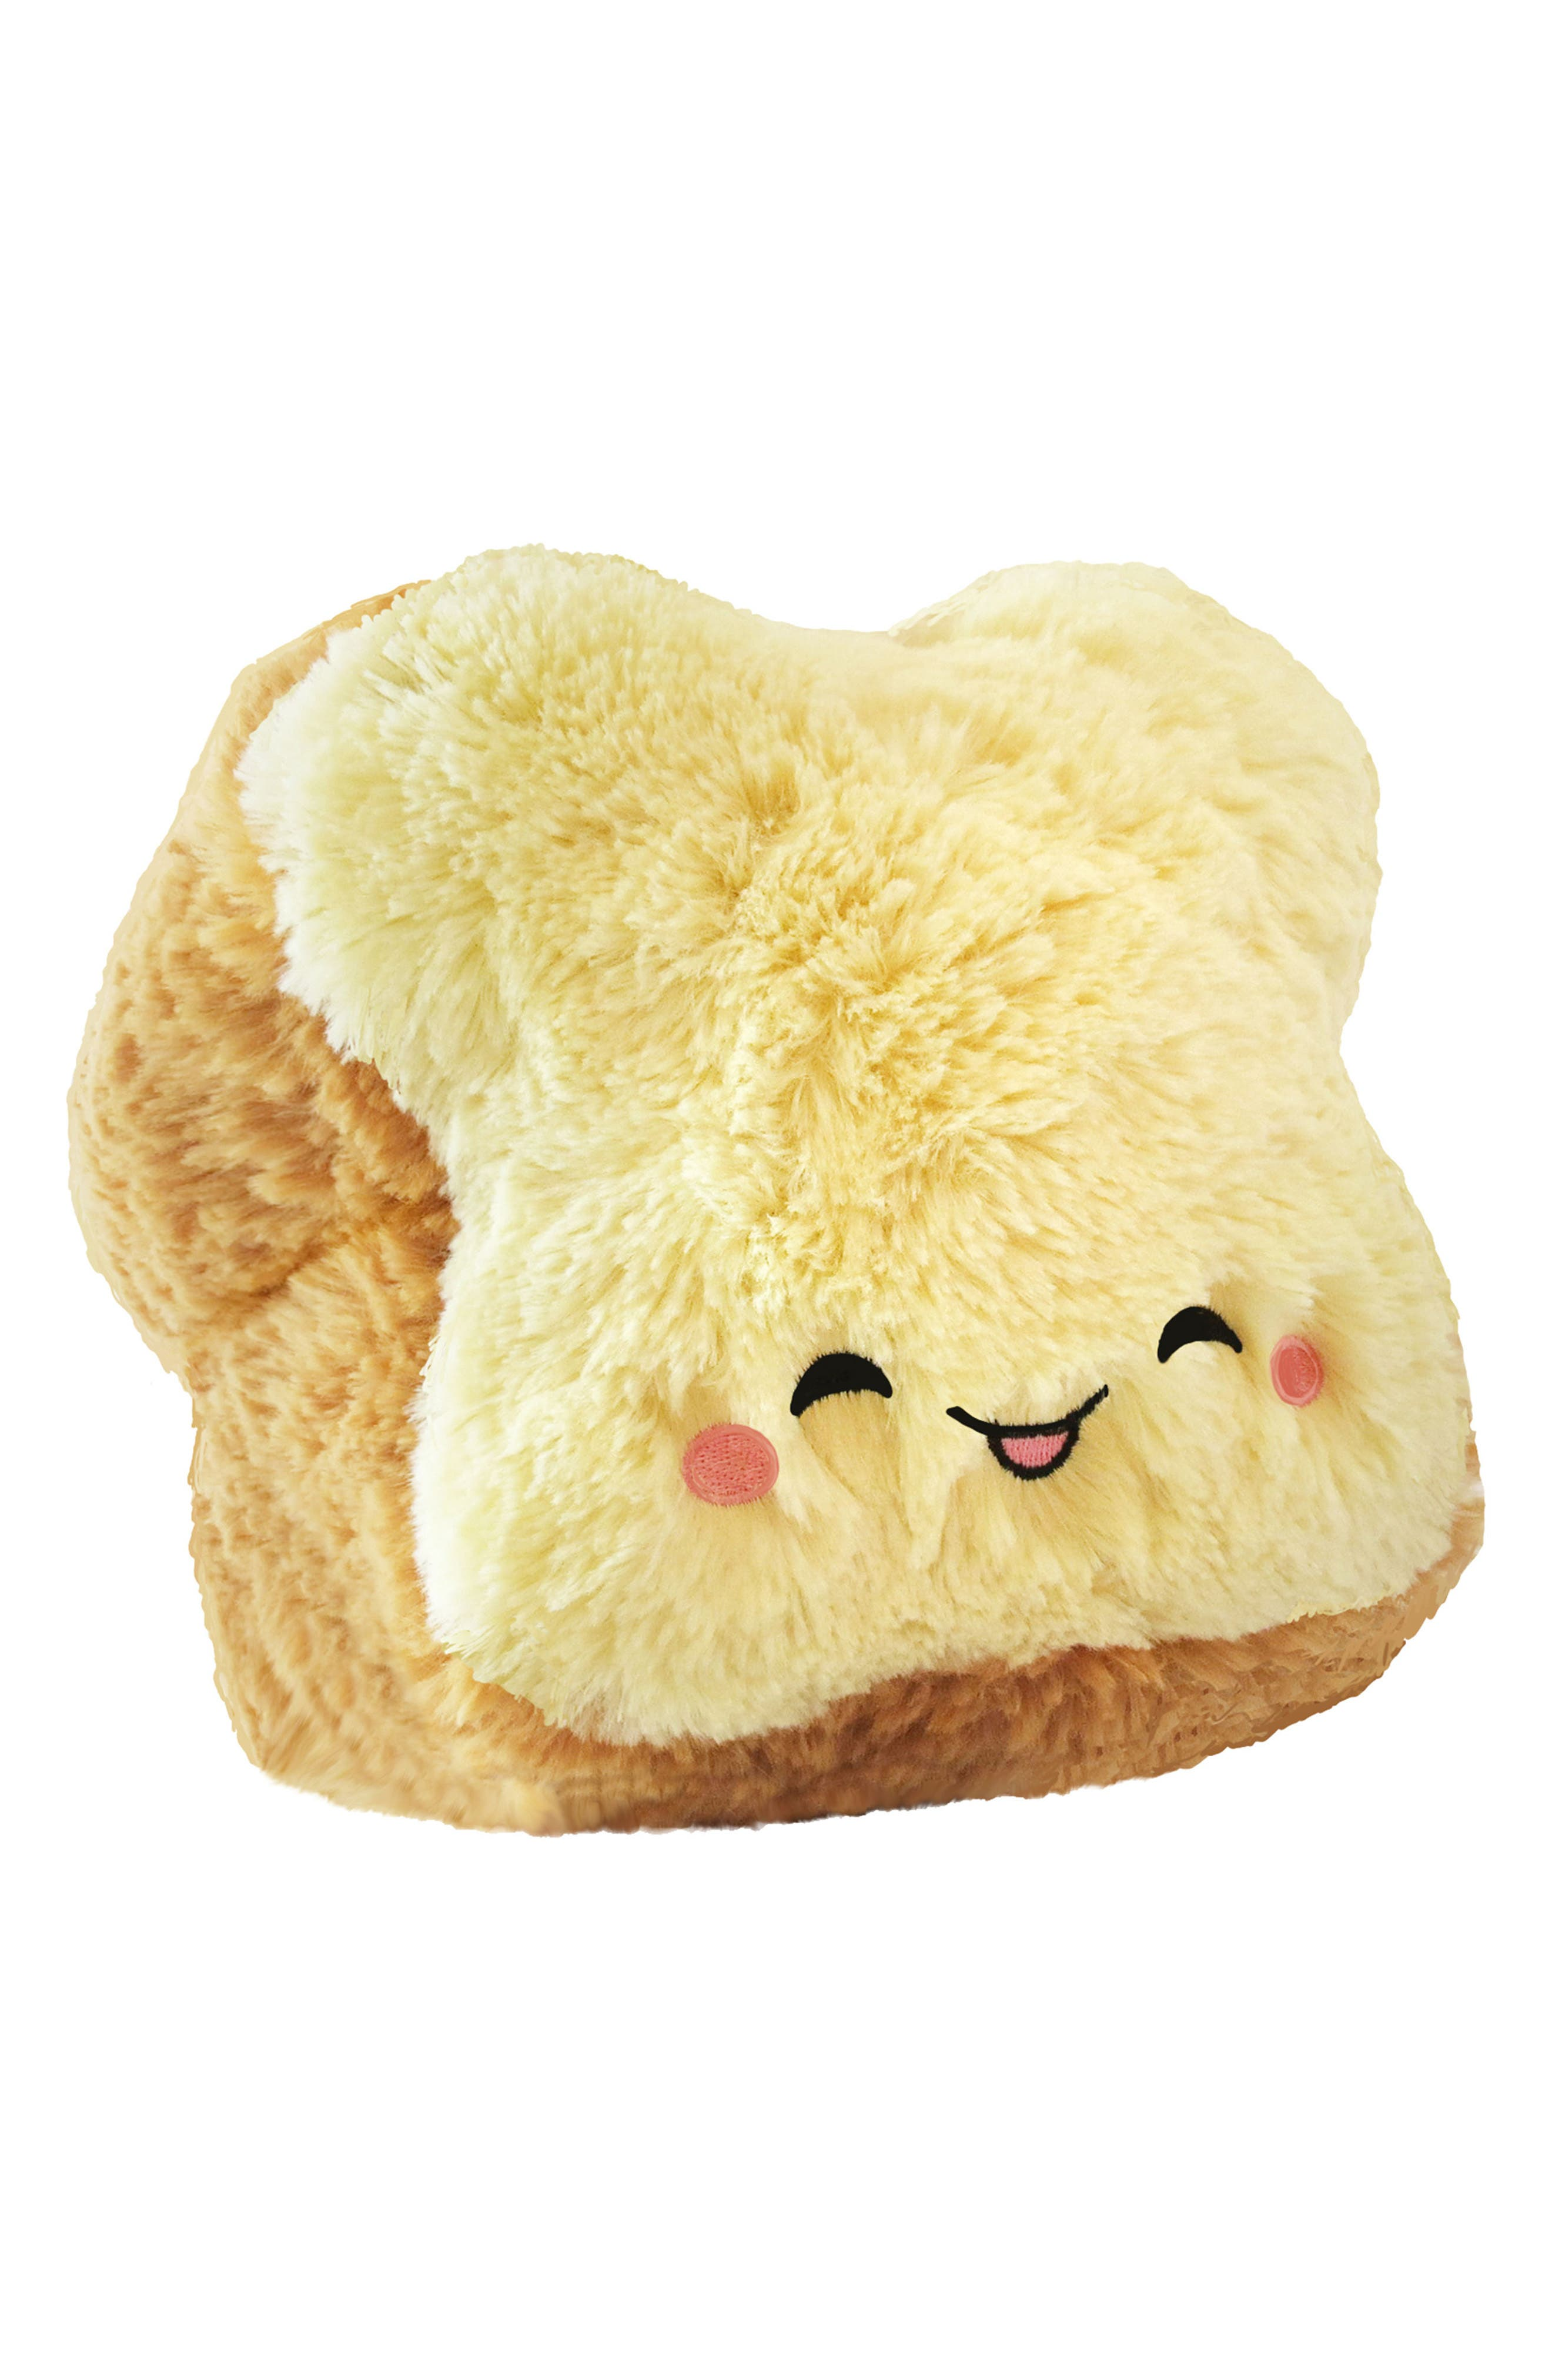 Main Image - Squishable Mini Loaf of Bread Stuffed Toy